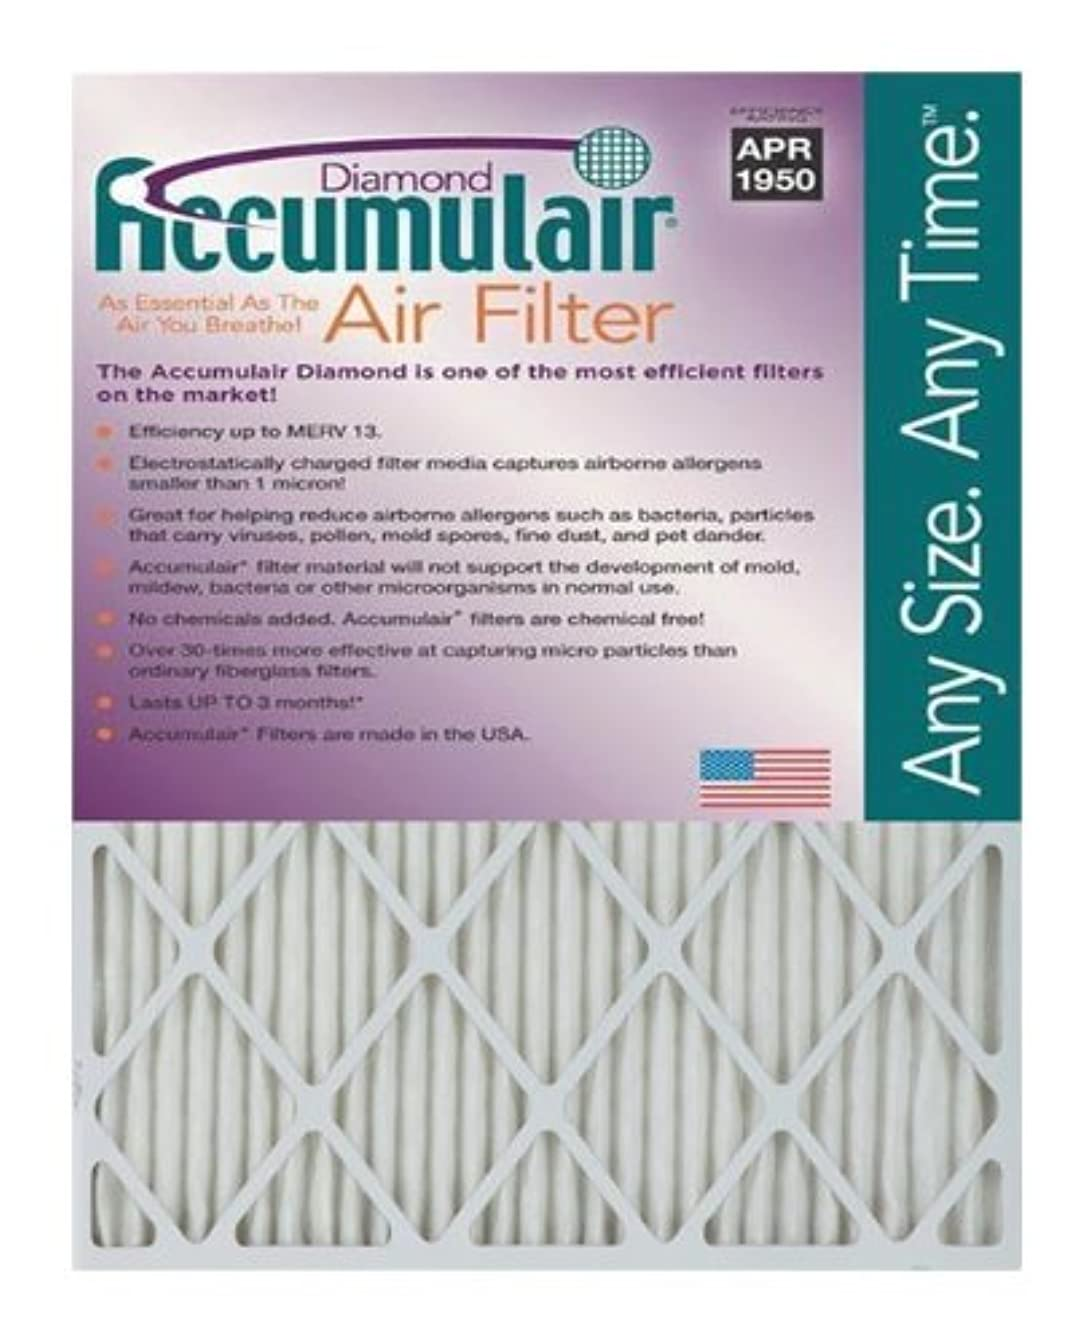 Accumulair Diamond 14x30x1 (13.5x29.5) MERV 13 Air Filter/Furnace Filters (2 Pack)